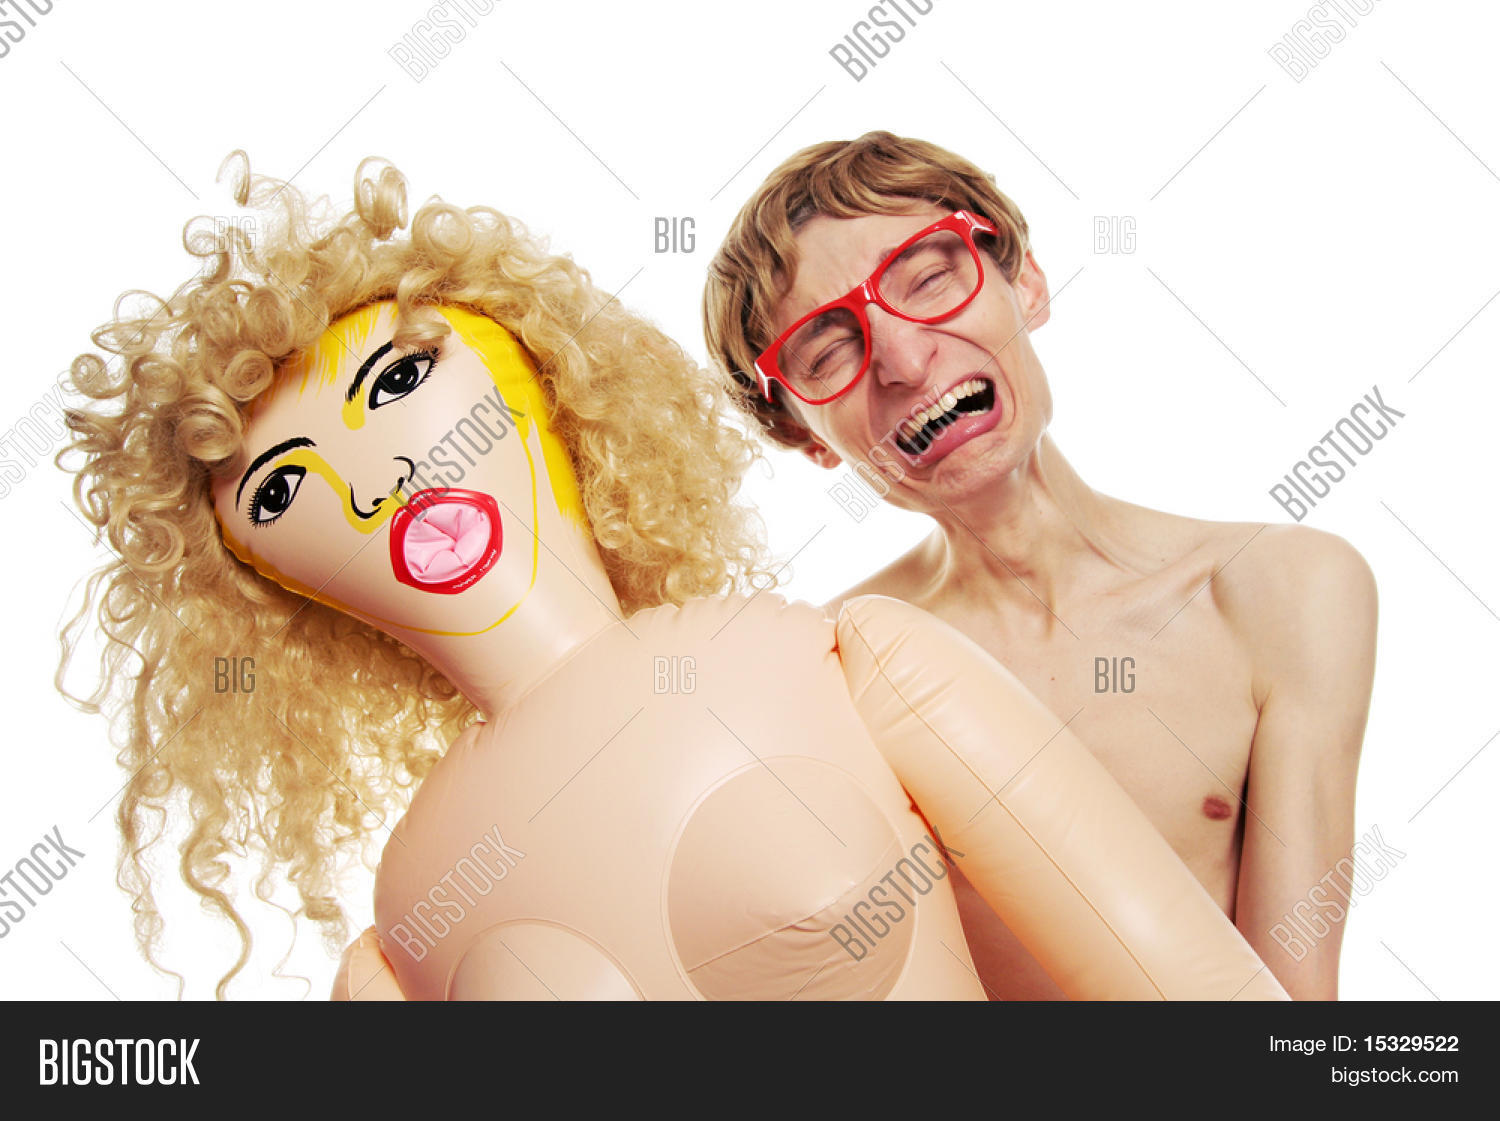 Girls having sex with blow up dolls